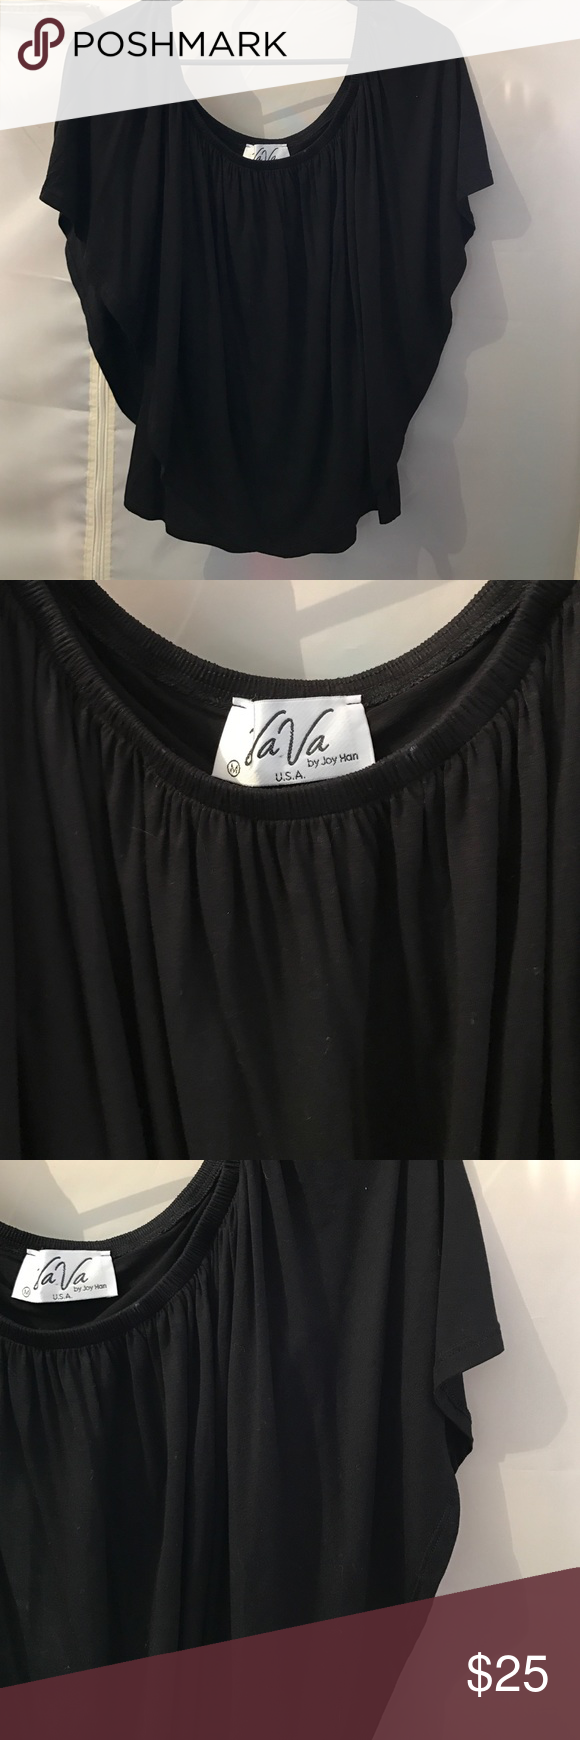 Va Va Triple Threat top for Boston Proper M NWOT black off the shoulder triple threat top by Va Va for Boston Proper. Can be worn three ways! Never worn. Viscose spandex fabrication- hand wash cold water. va va for Boston Proper Tops Blouses